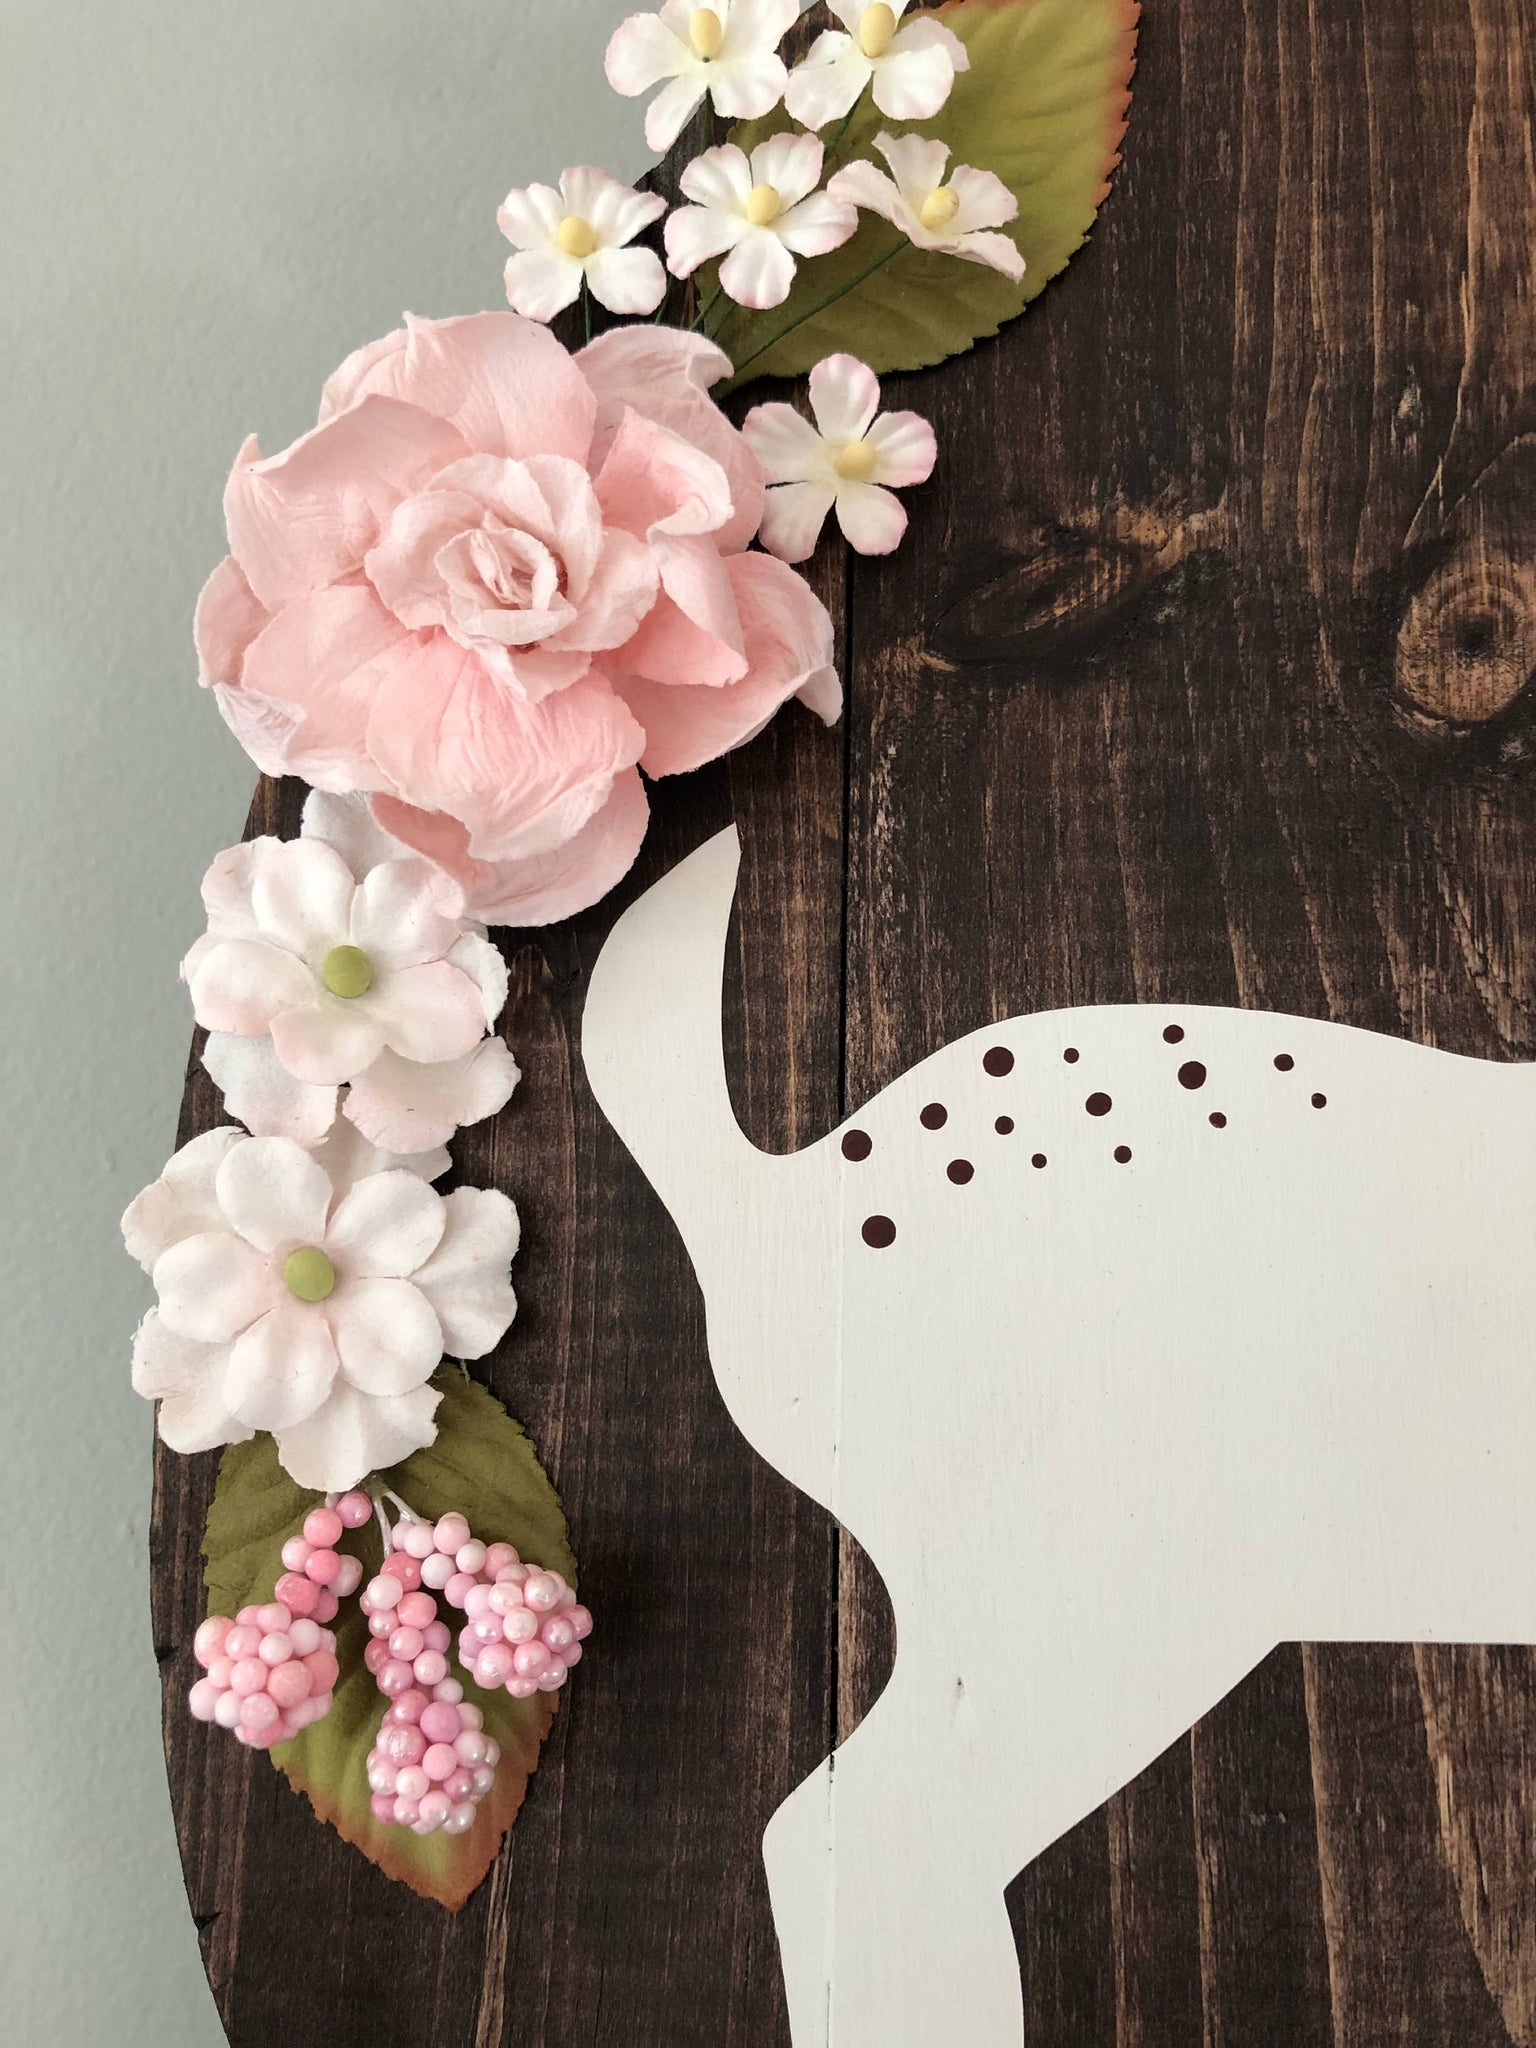 Oval Fawn Sign Stained In Kona With Assorted Light Pink Flower